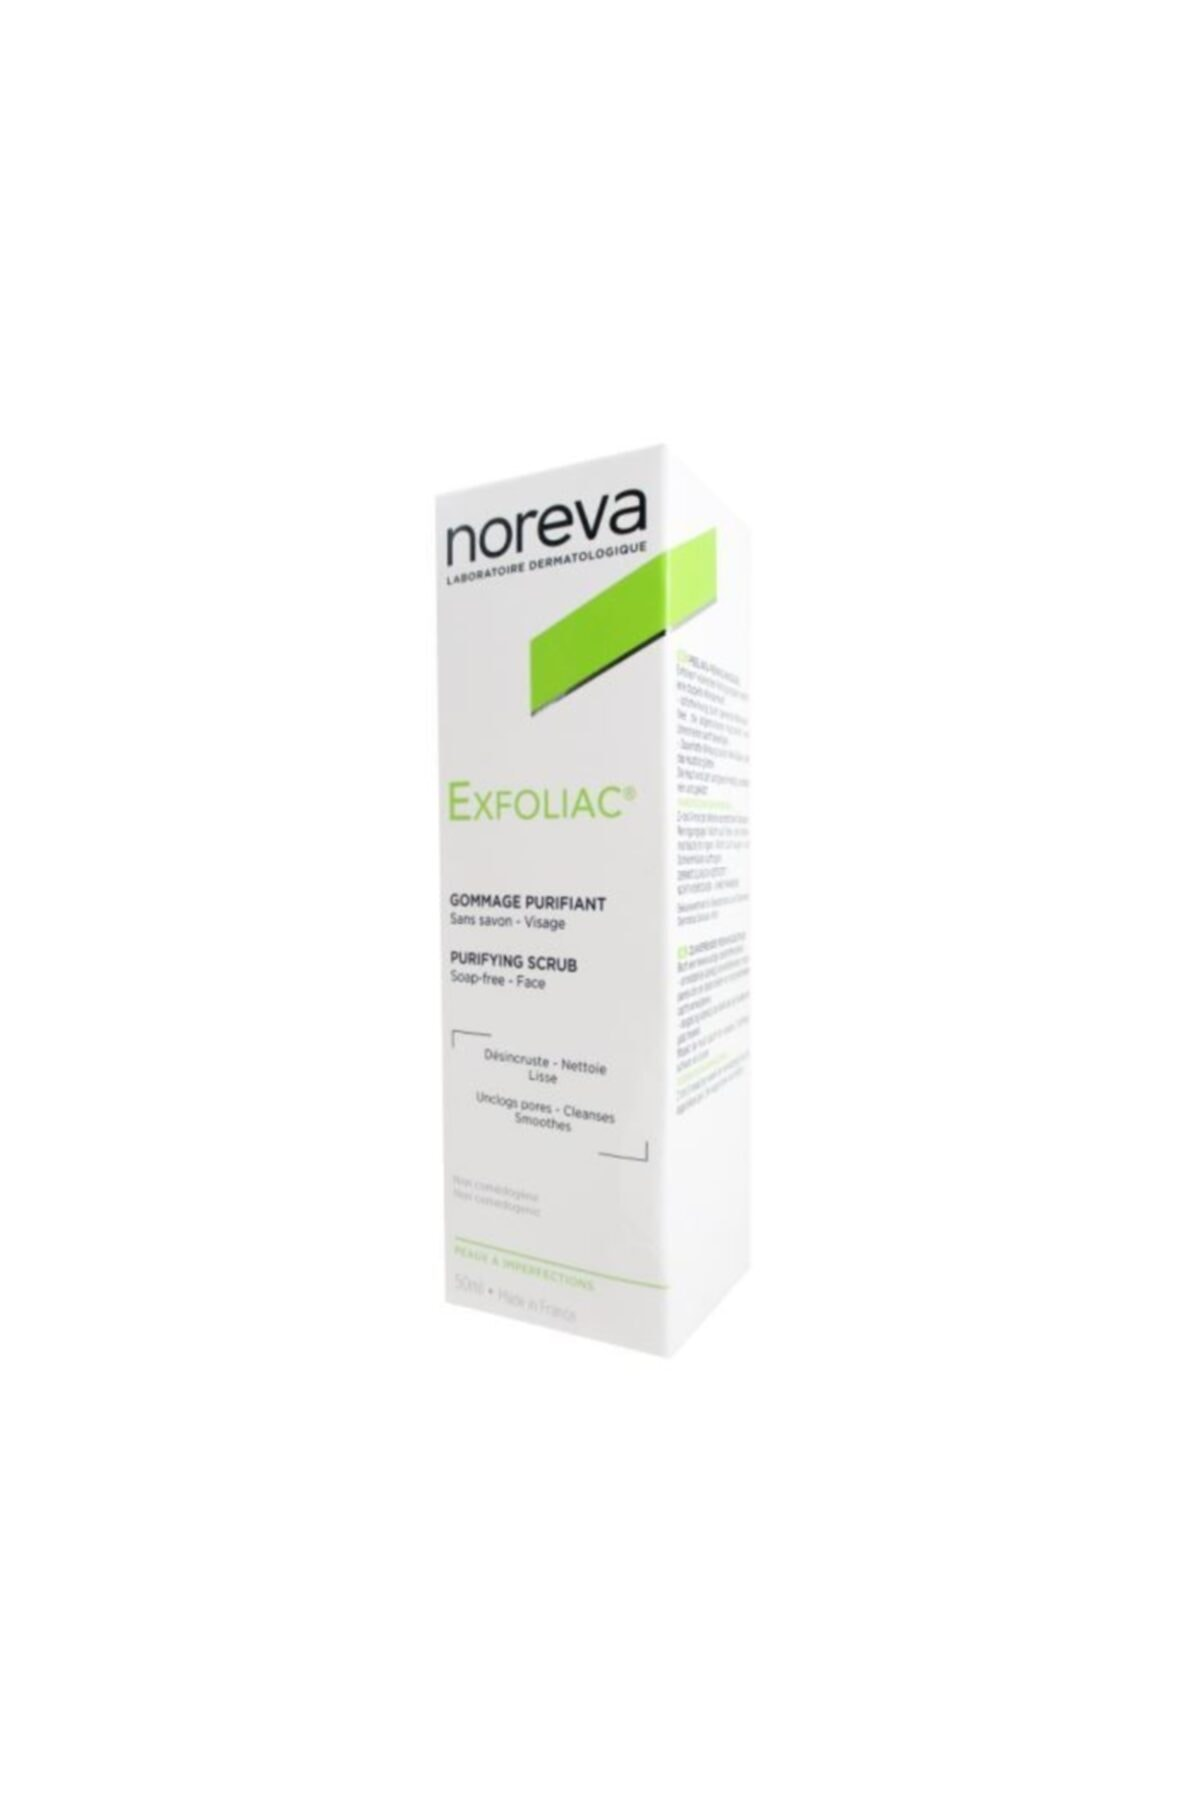 Noreva Exfoliac Facial Scrub 50ml 2